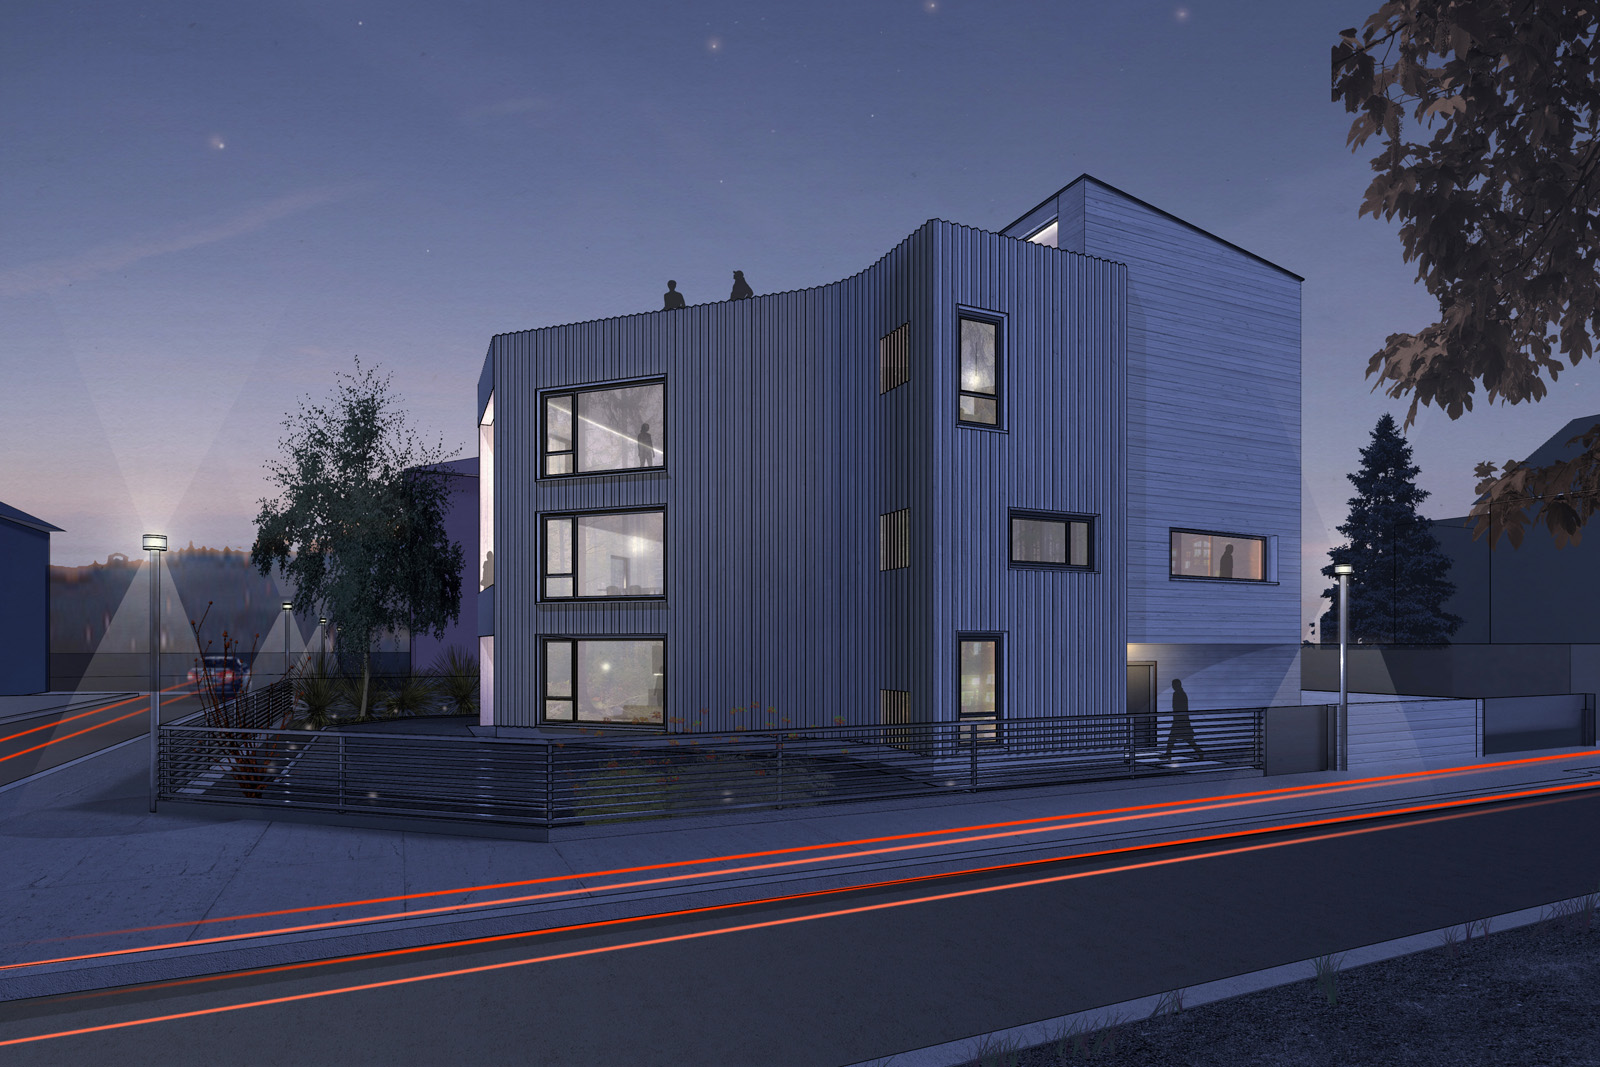 Proposed multi-family house